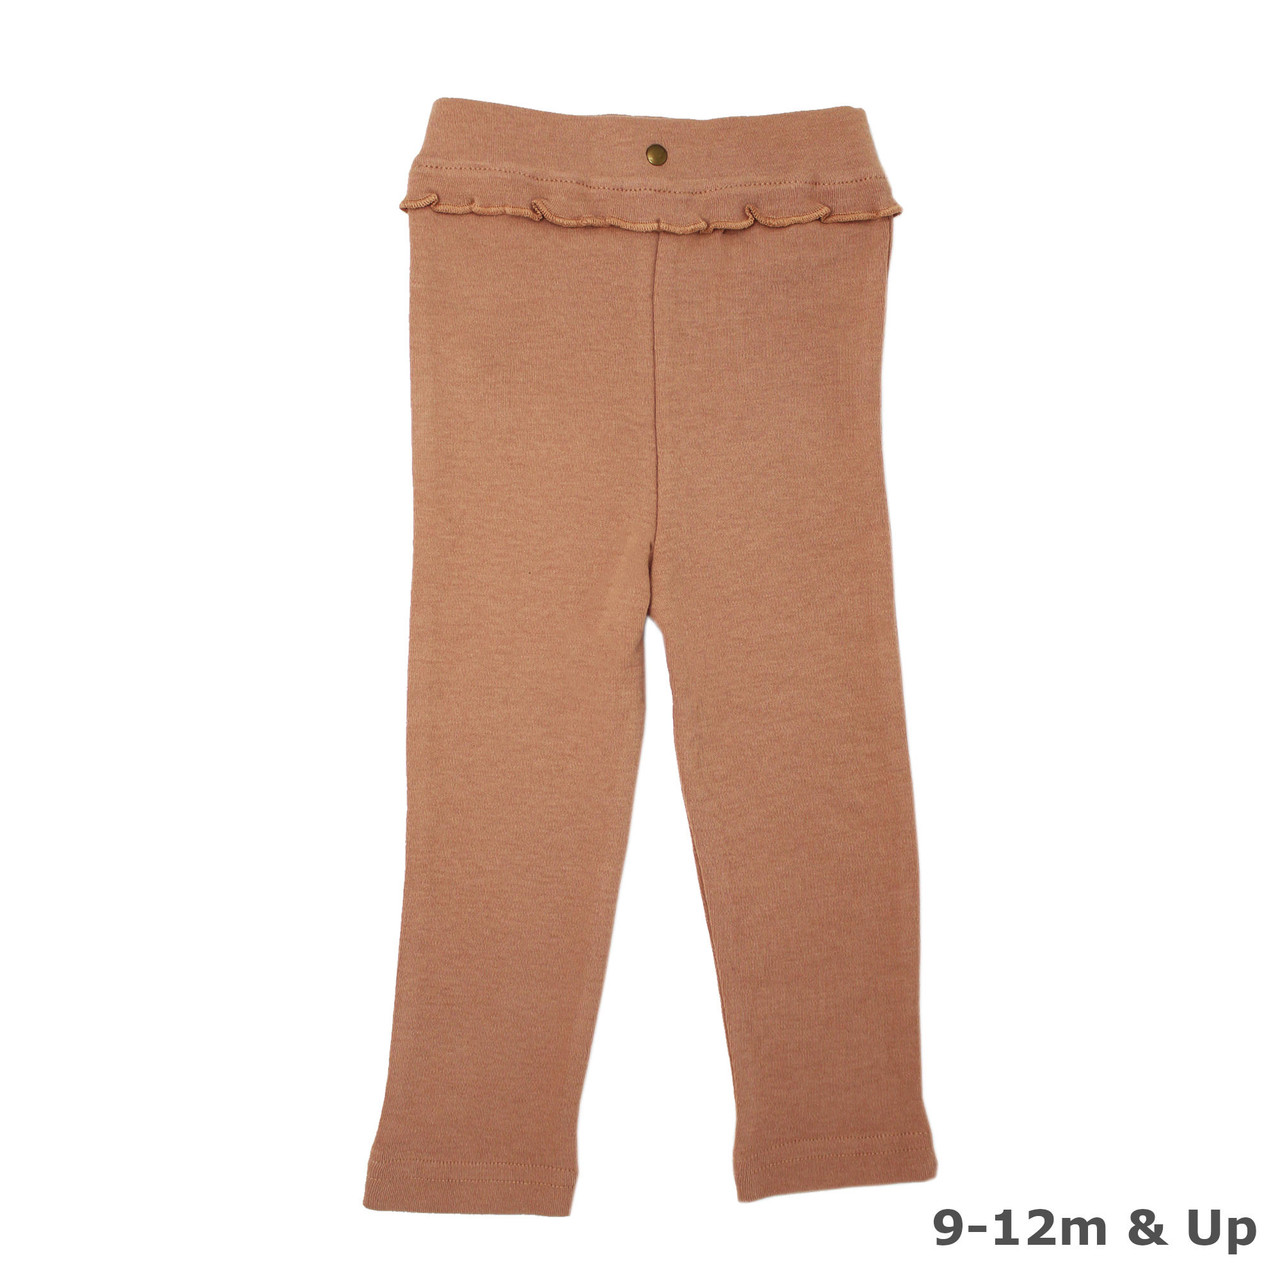 Organic Ruffle Footed Legging in Nutmeg (9-12m & Up), Flat